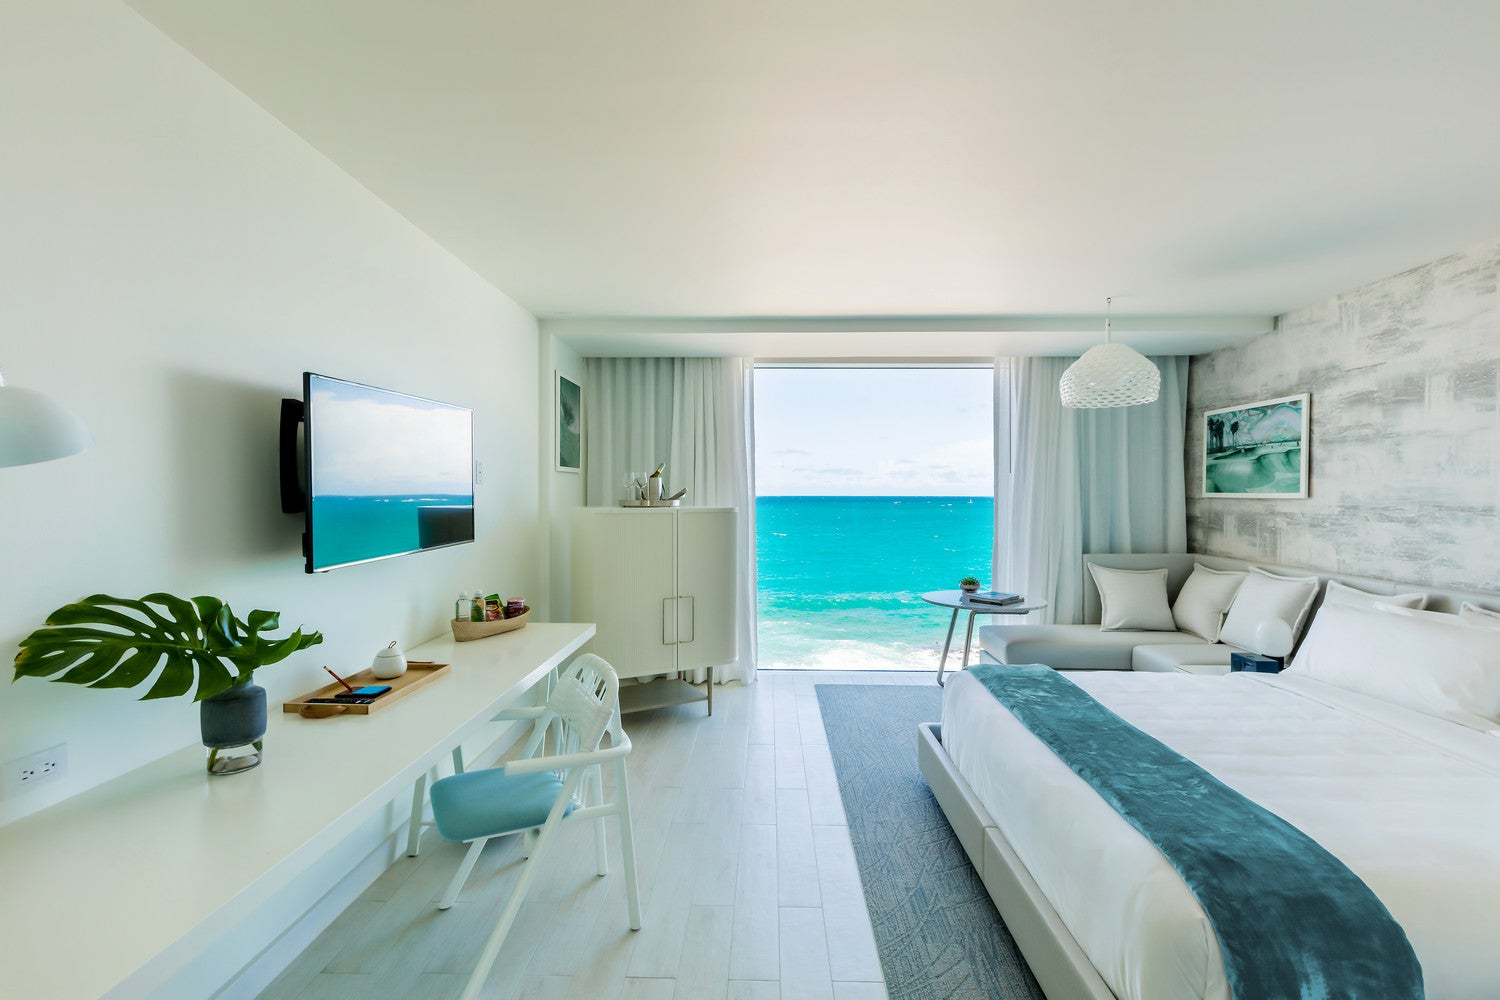 Stupendous New Serafina Beach Hotel In Puerto Rico Design Review Home Remodeling Inspirations Gresiscottssportslandcom